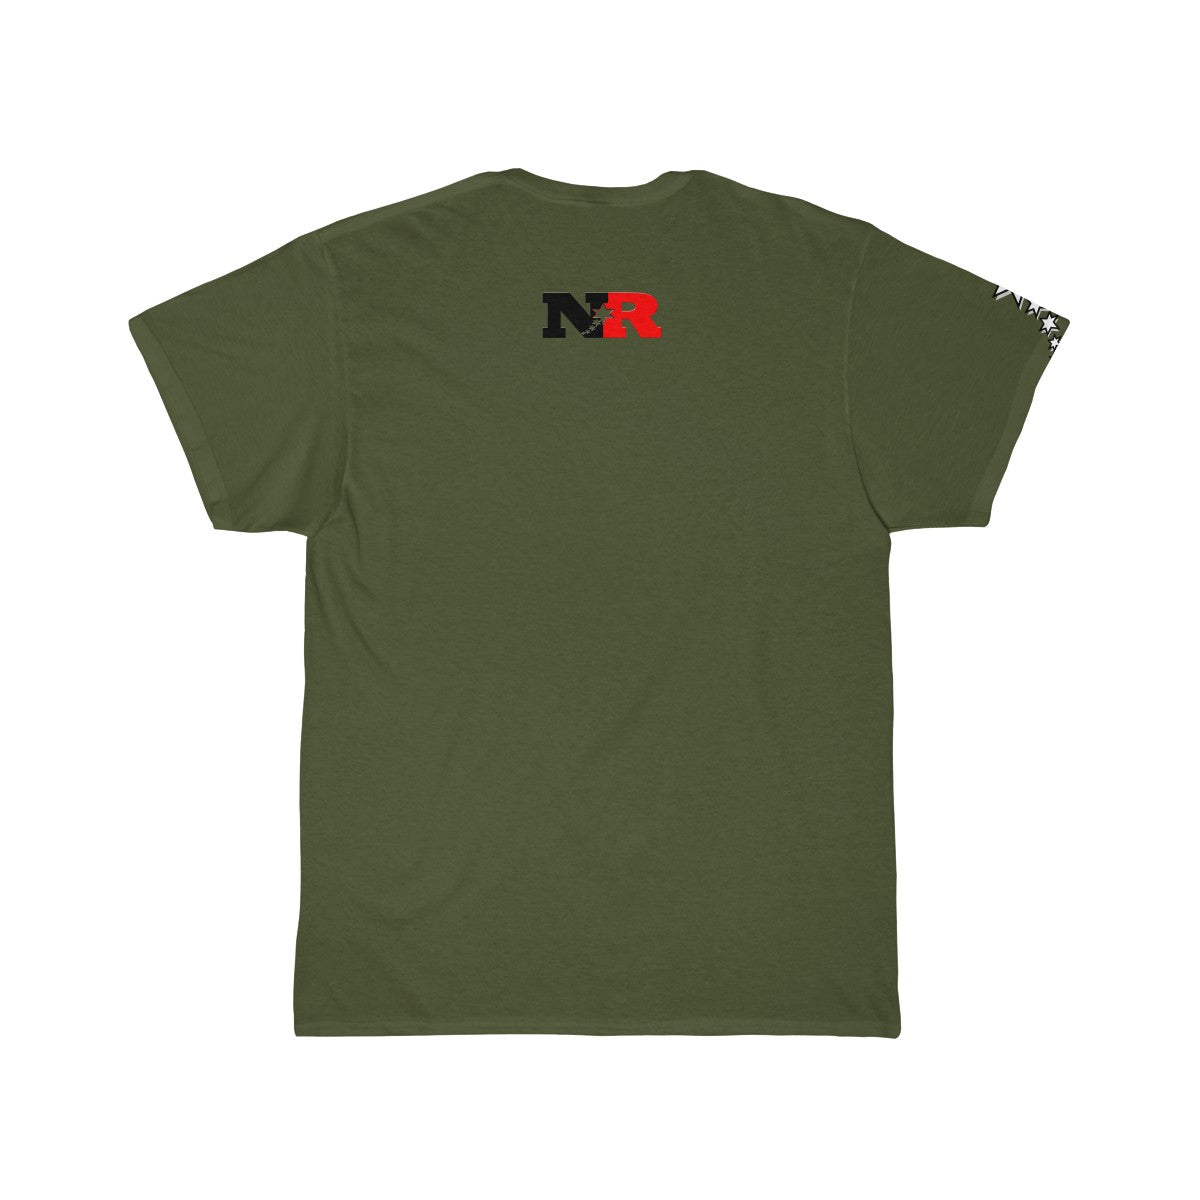 Men's Short Sleeve Tee - Now You know